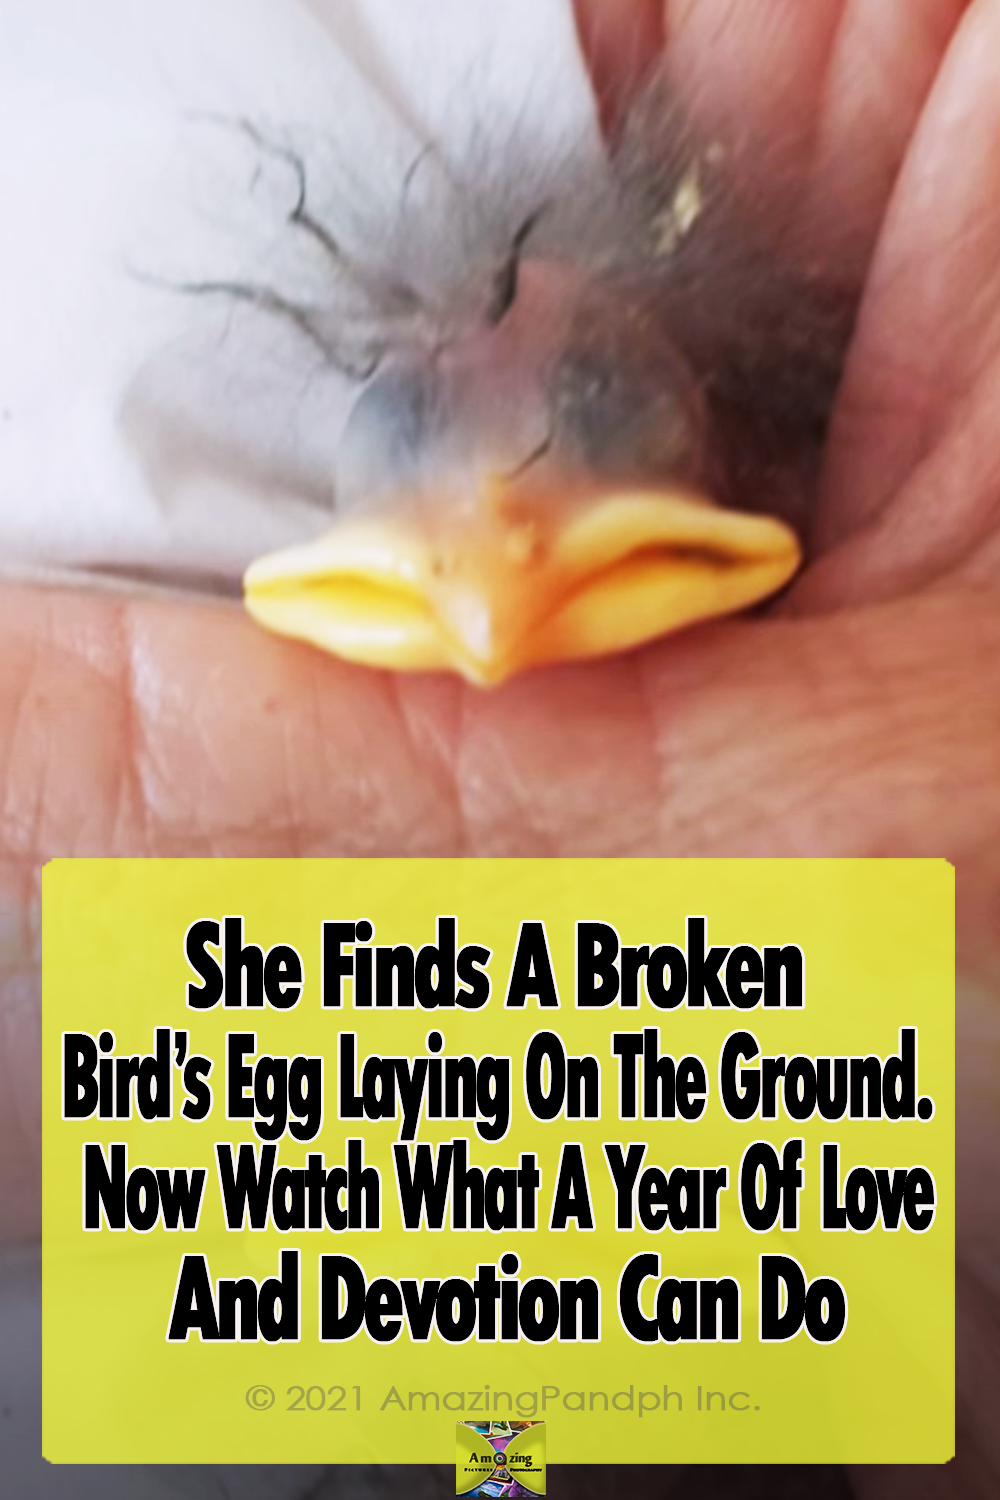 animal, bird, egg, Egg Laying, rescued baby bird, Starling, hatchling, humane, emotional, save a life,